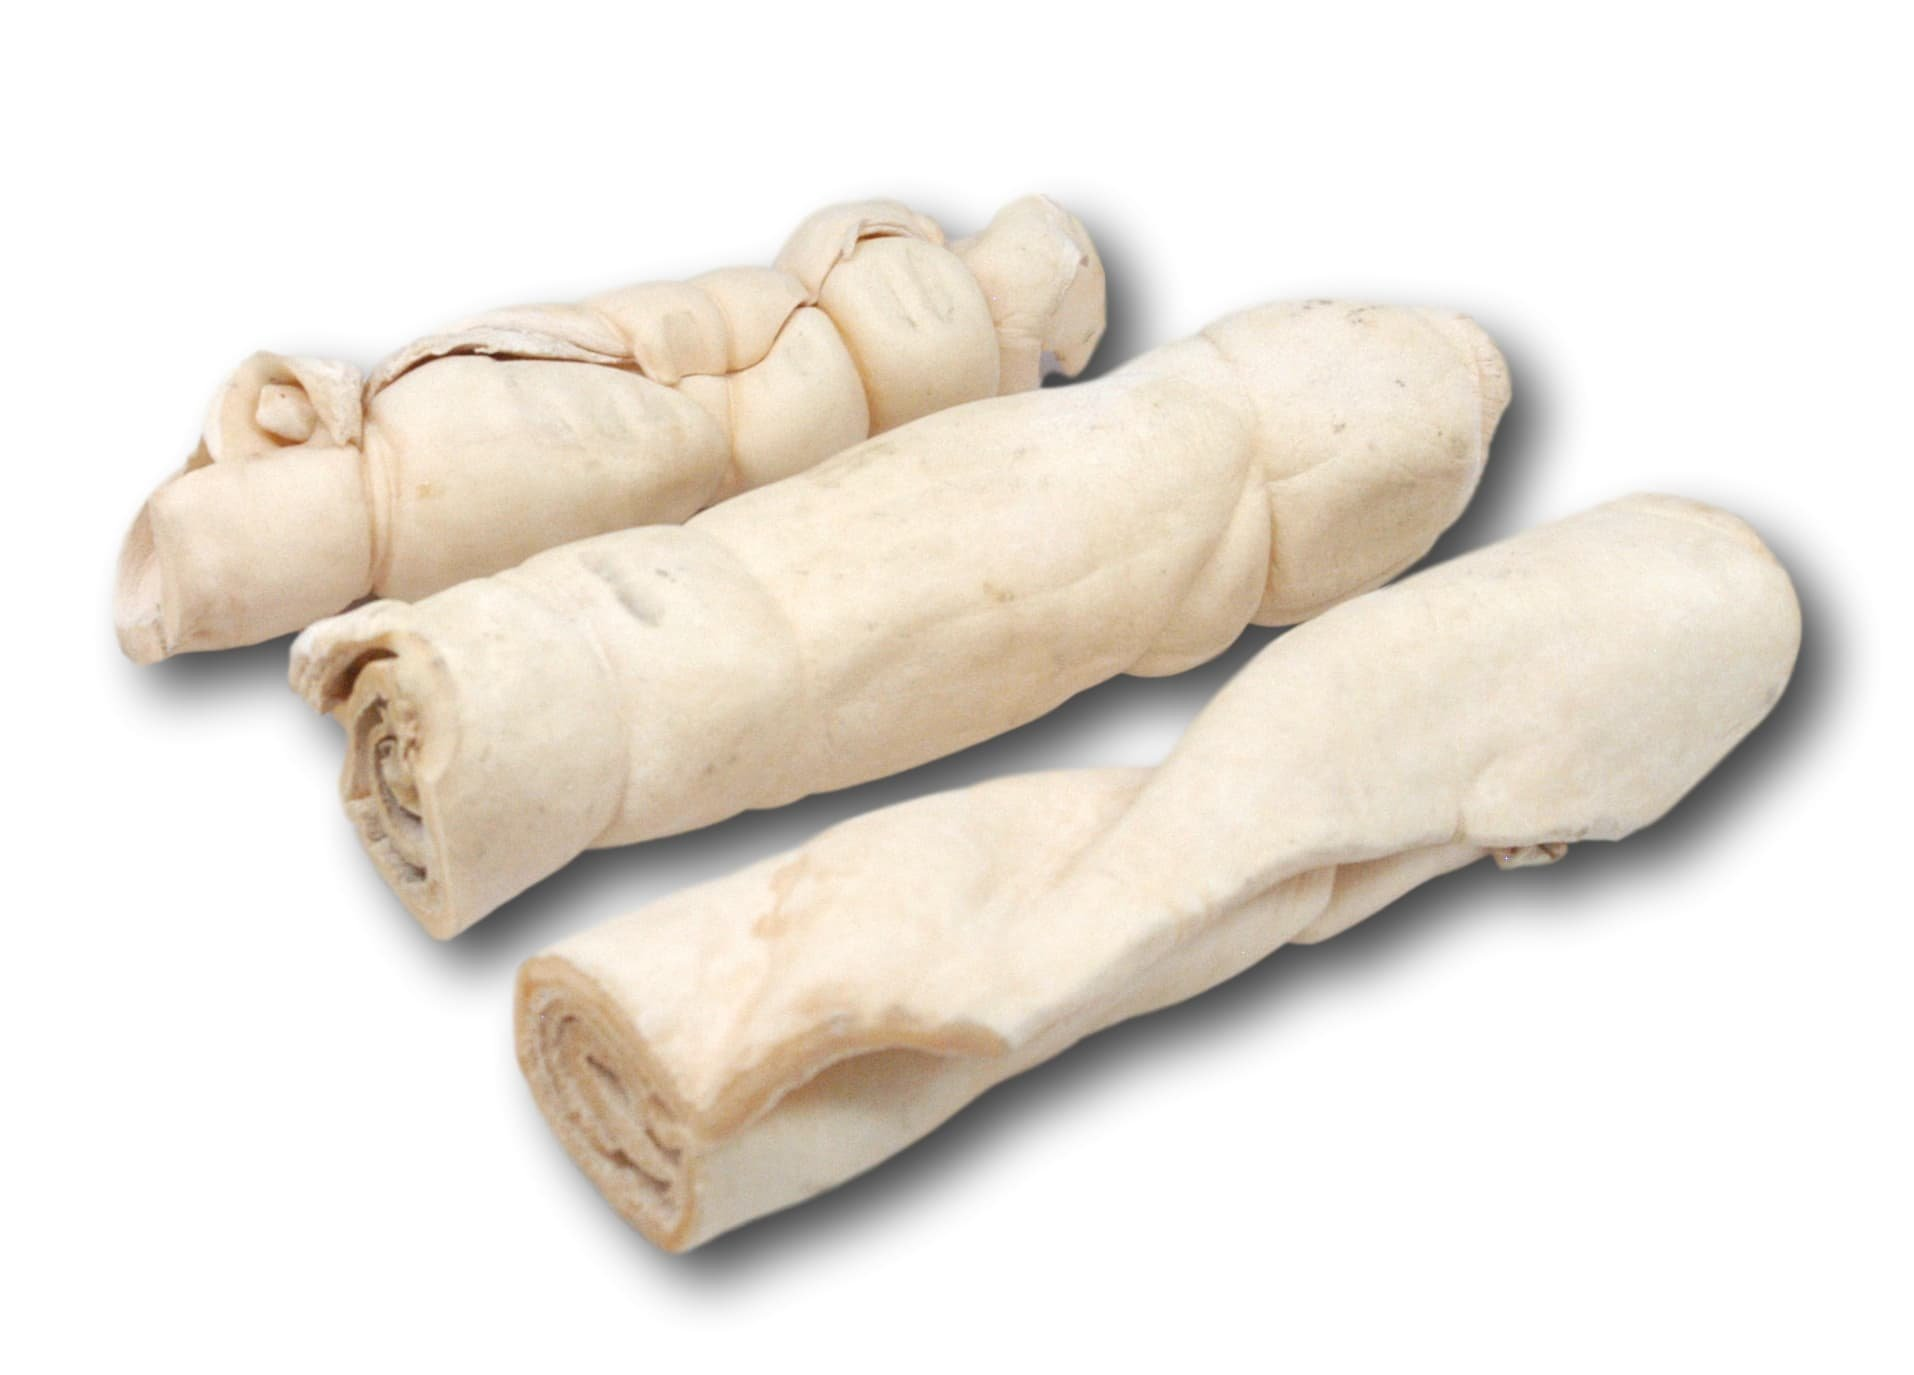 Top Dog Beef Cheek Retriever Rolls 10''-12'' Thick (3pack) This product is not from China Chews